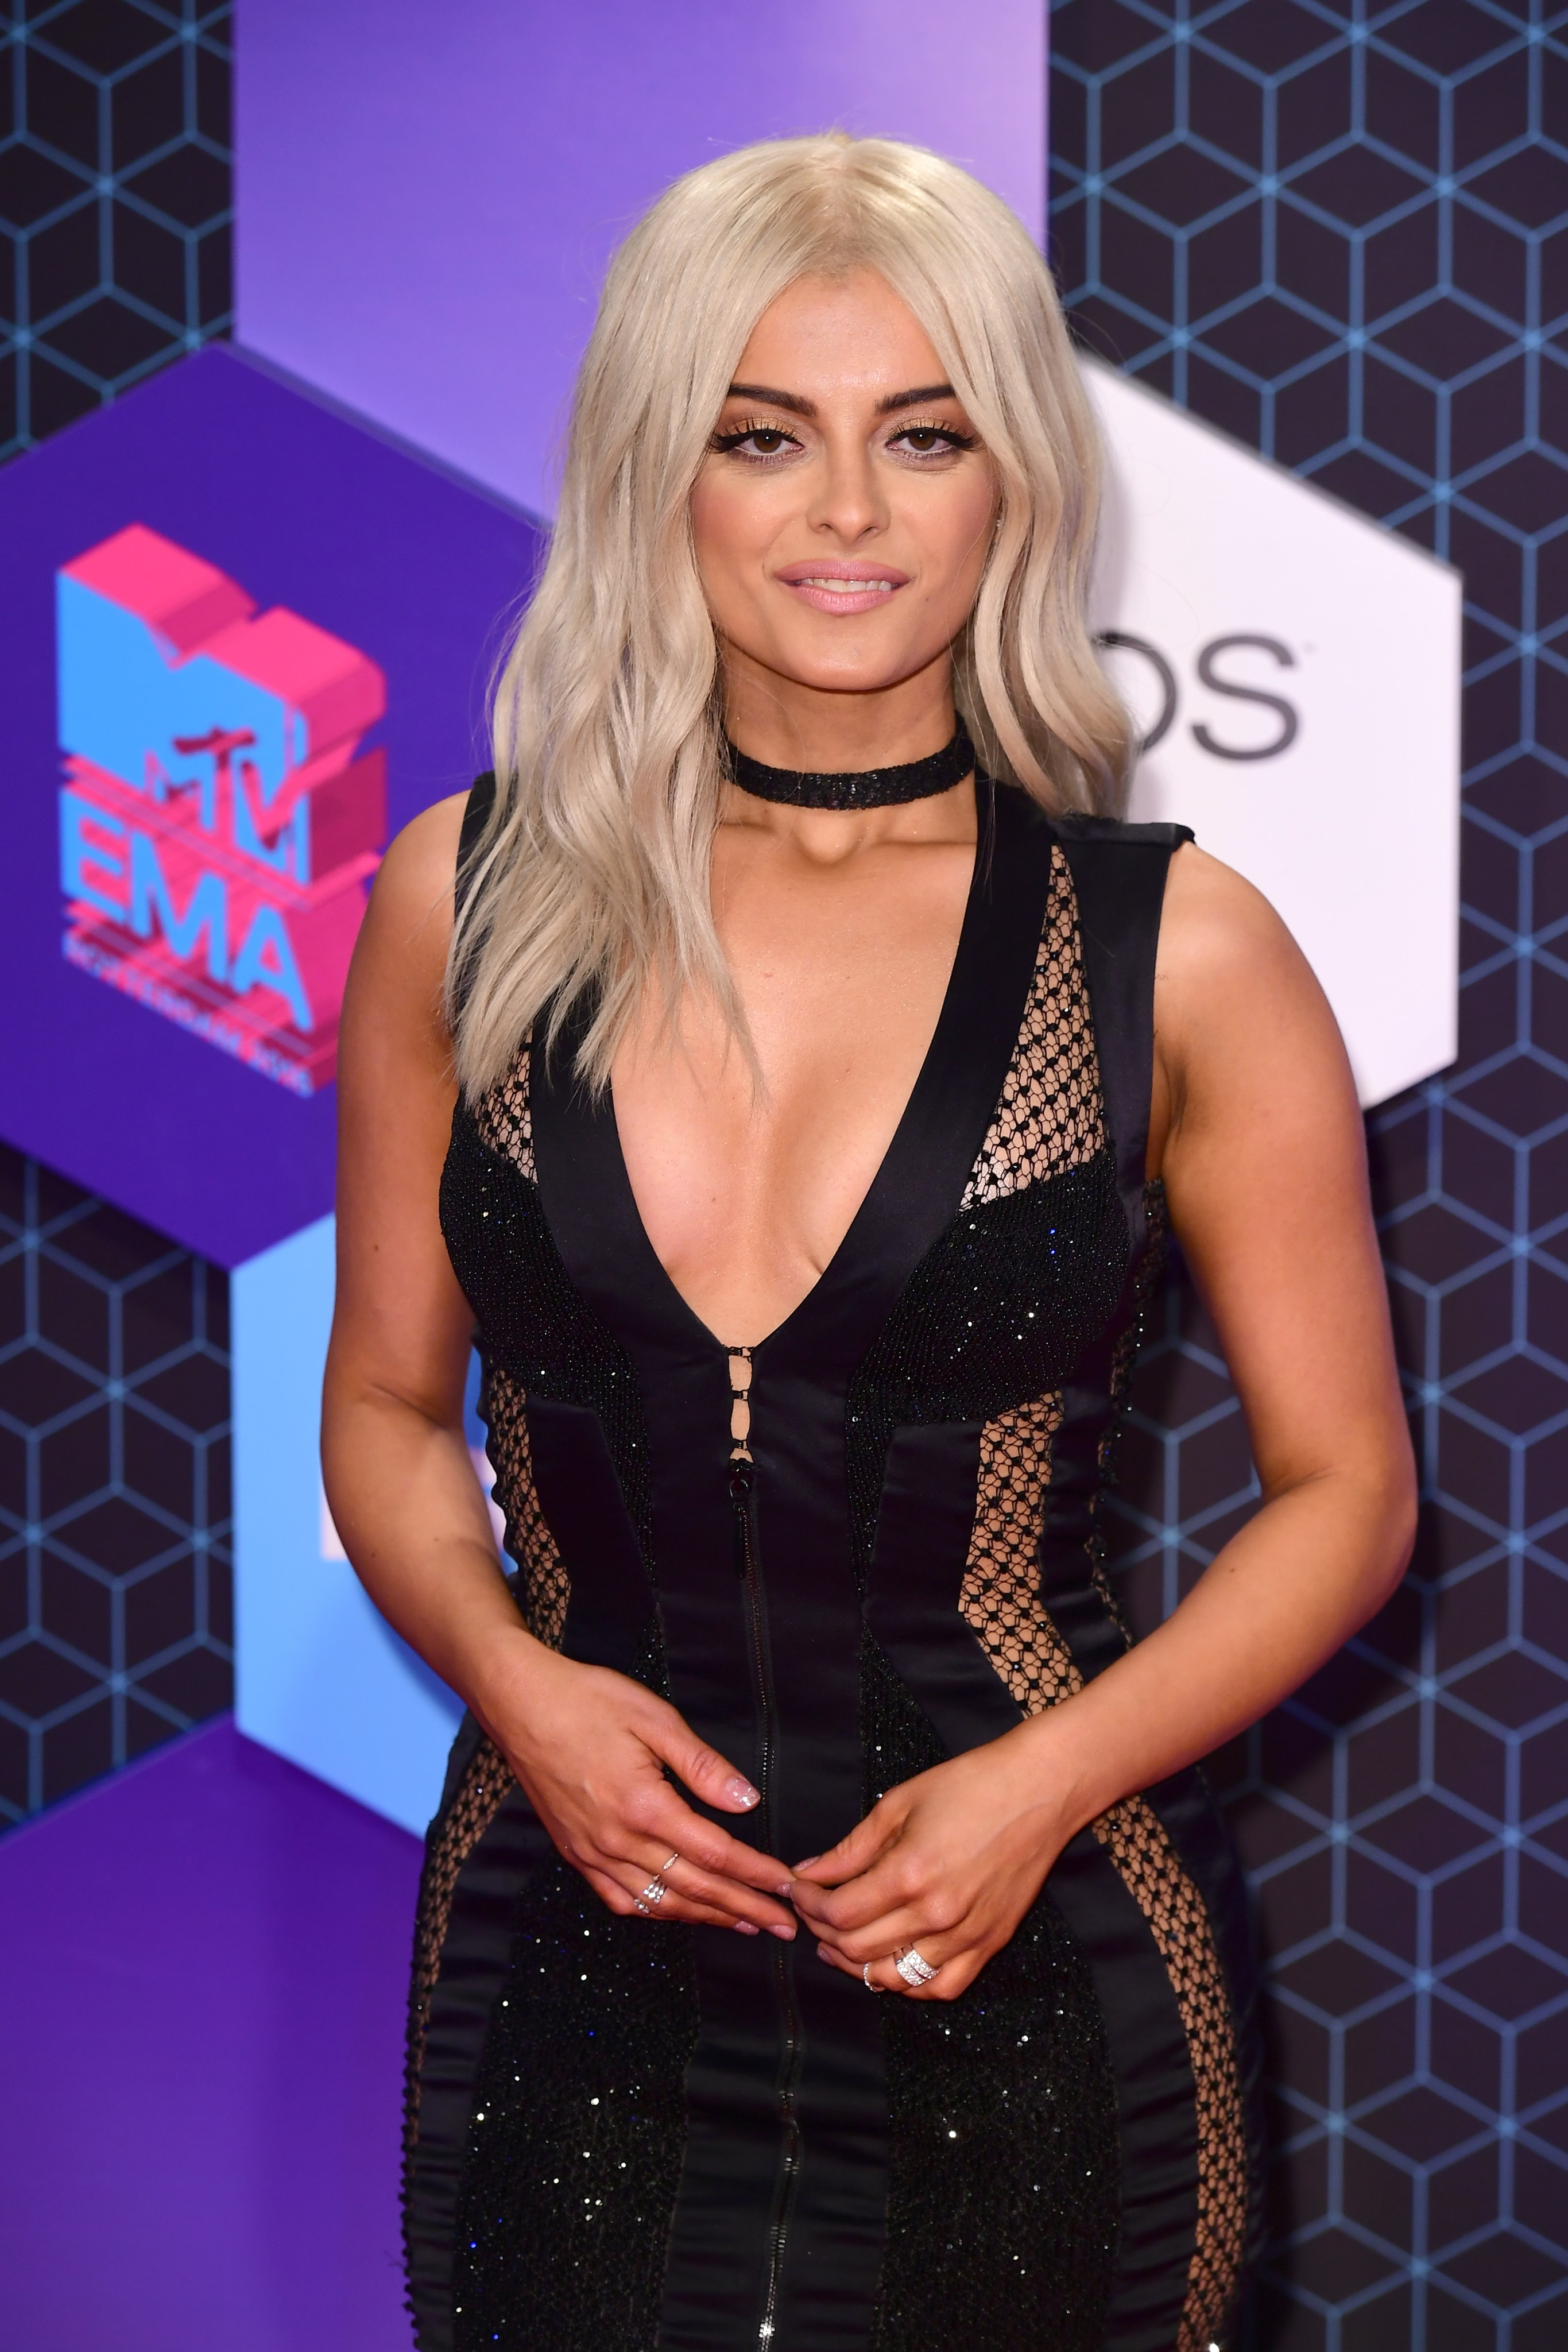 Bebe Rexha photo gallery - high quality pics of Bebe Rexha ...